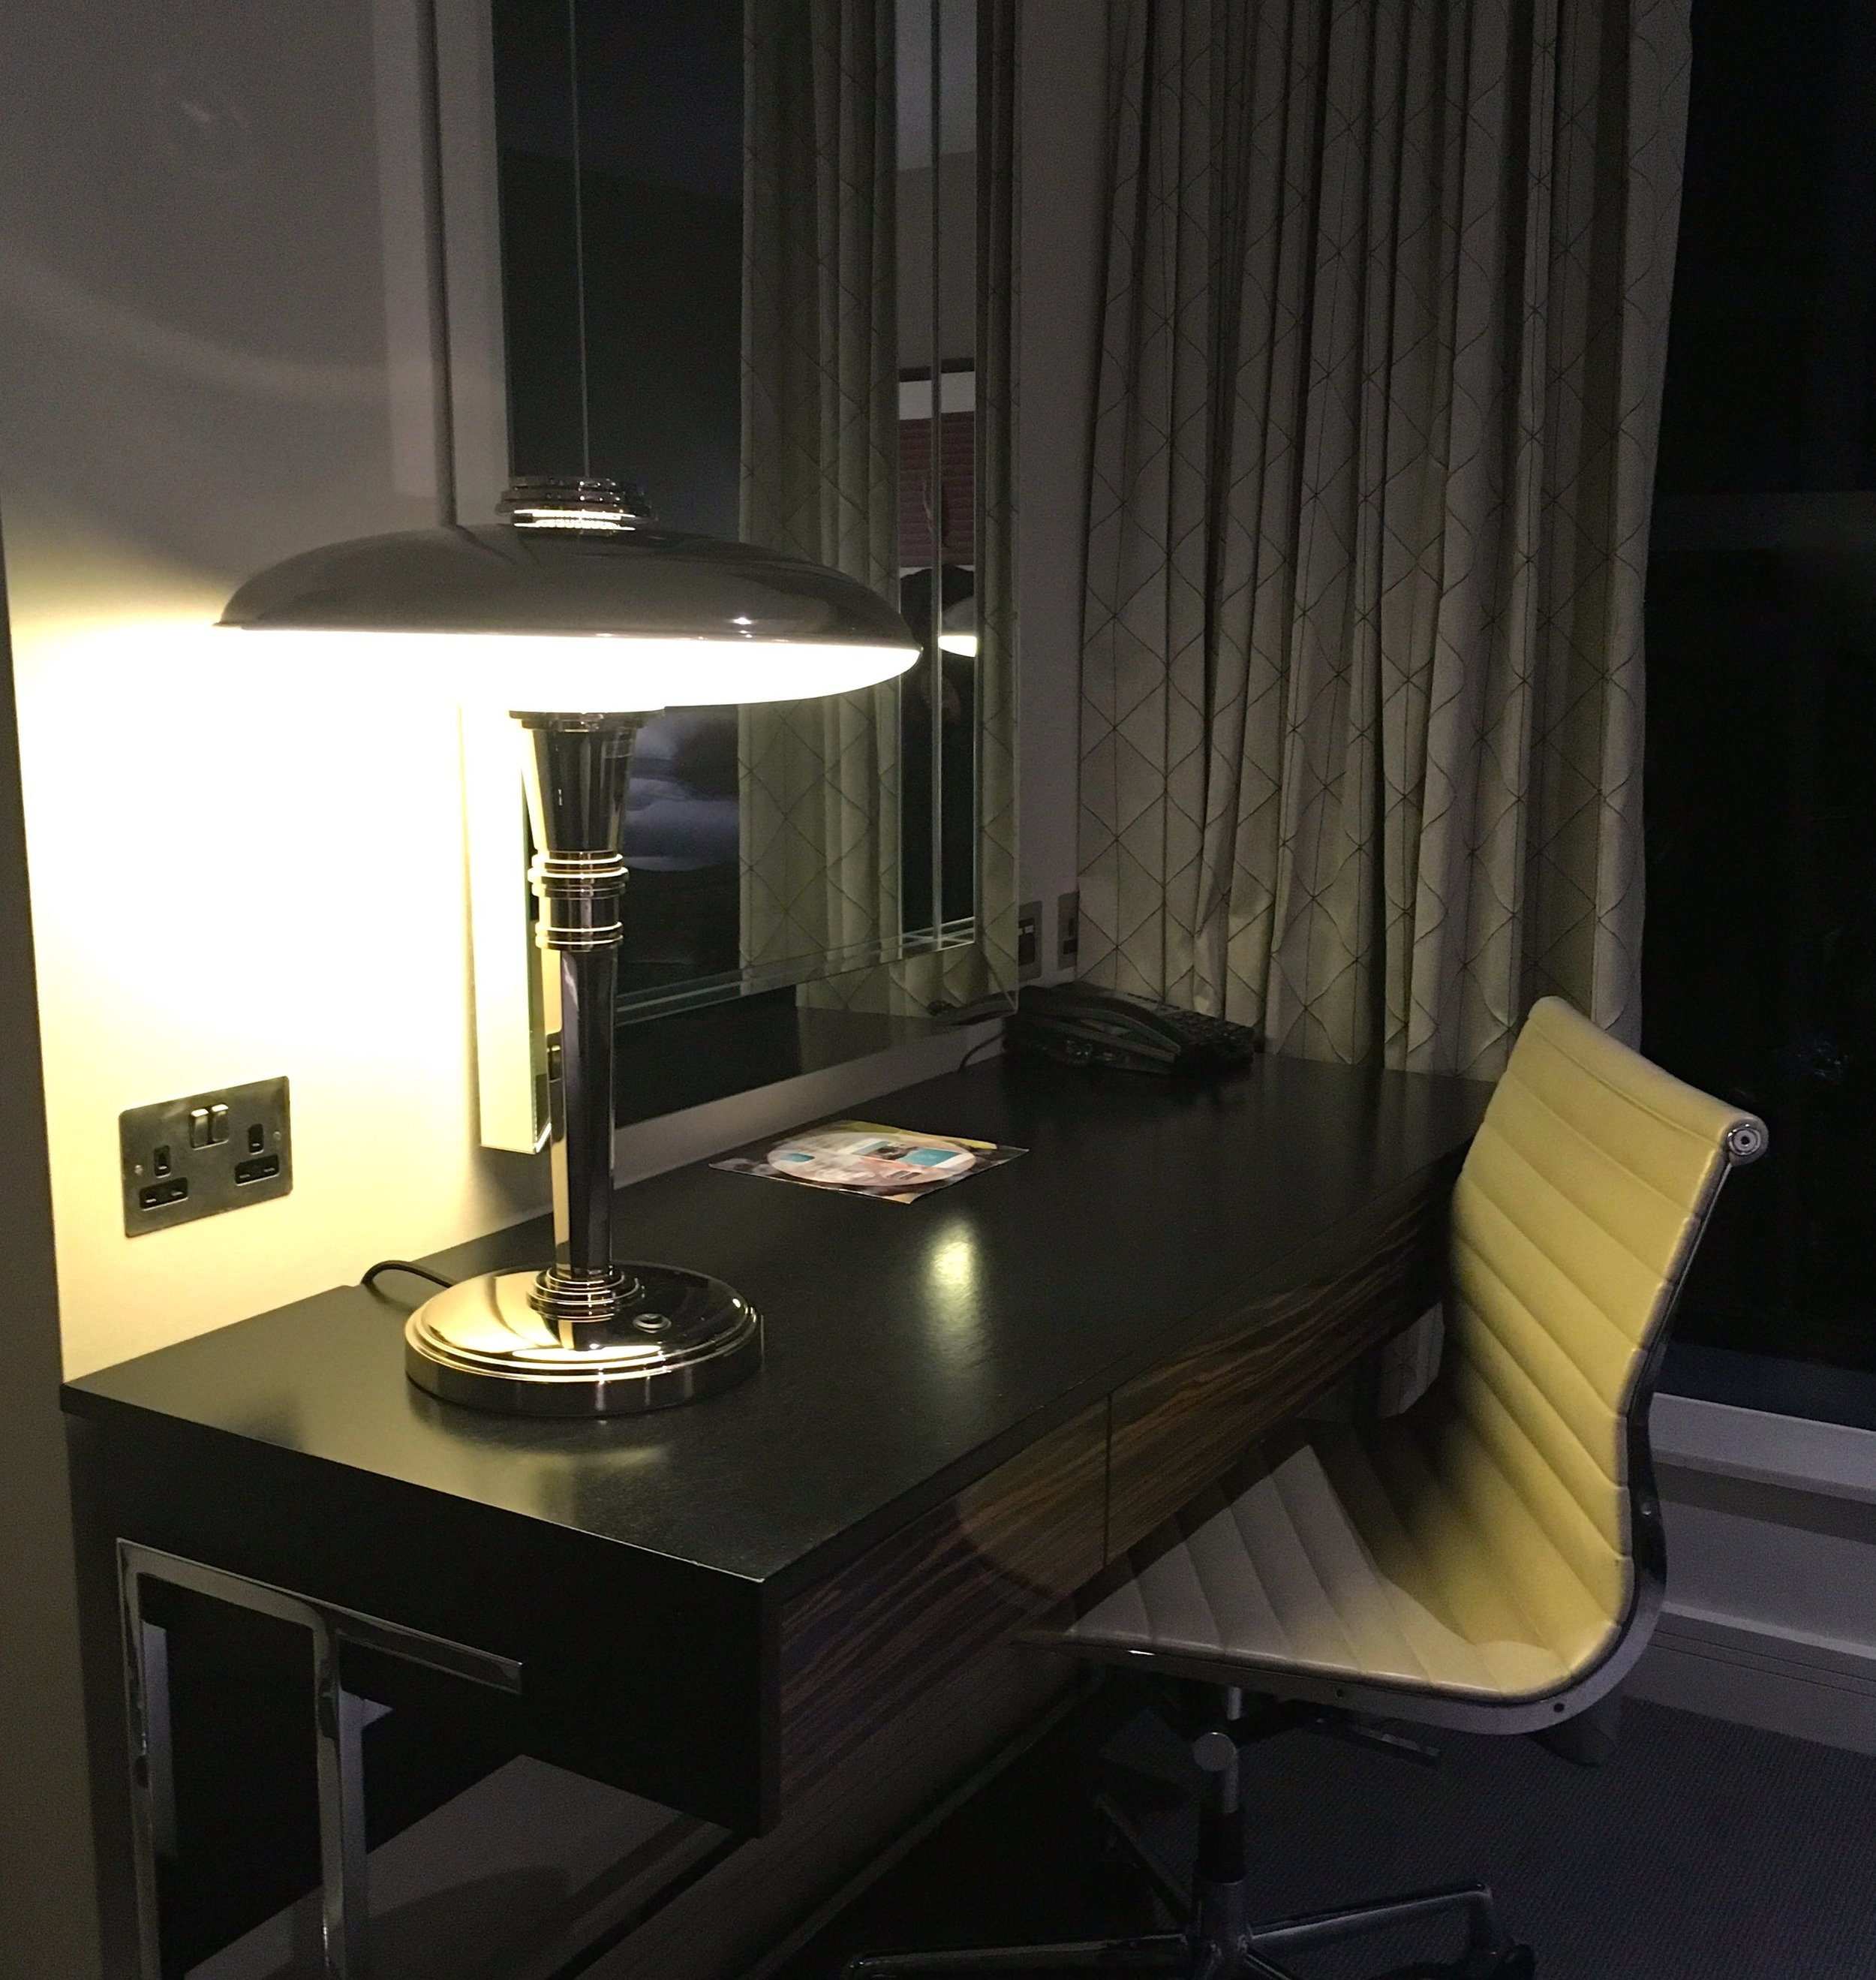 Brooklands Hotel Weybridge - there's always a desk in a hotel room isn't there